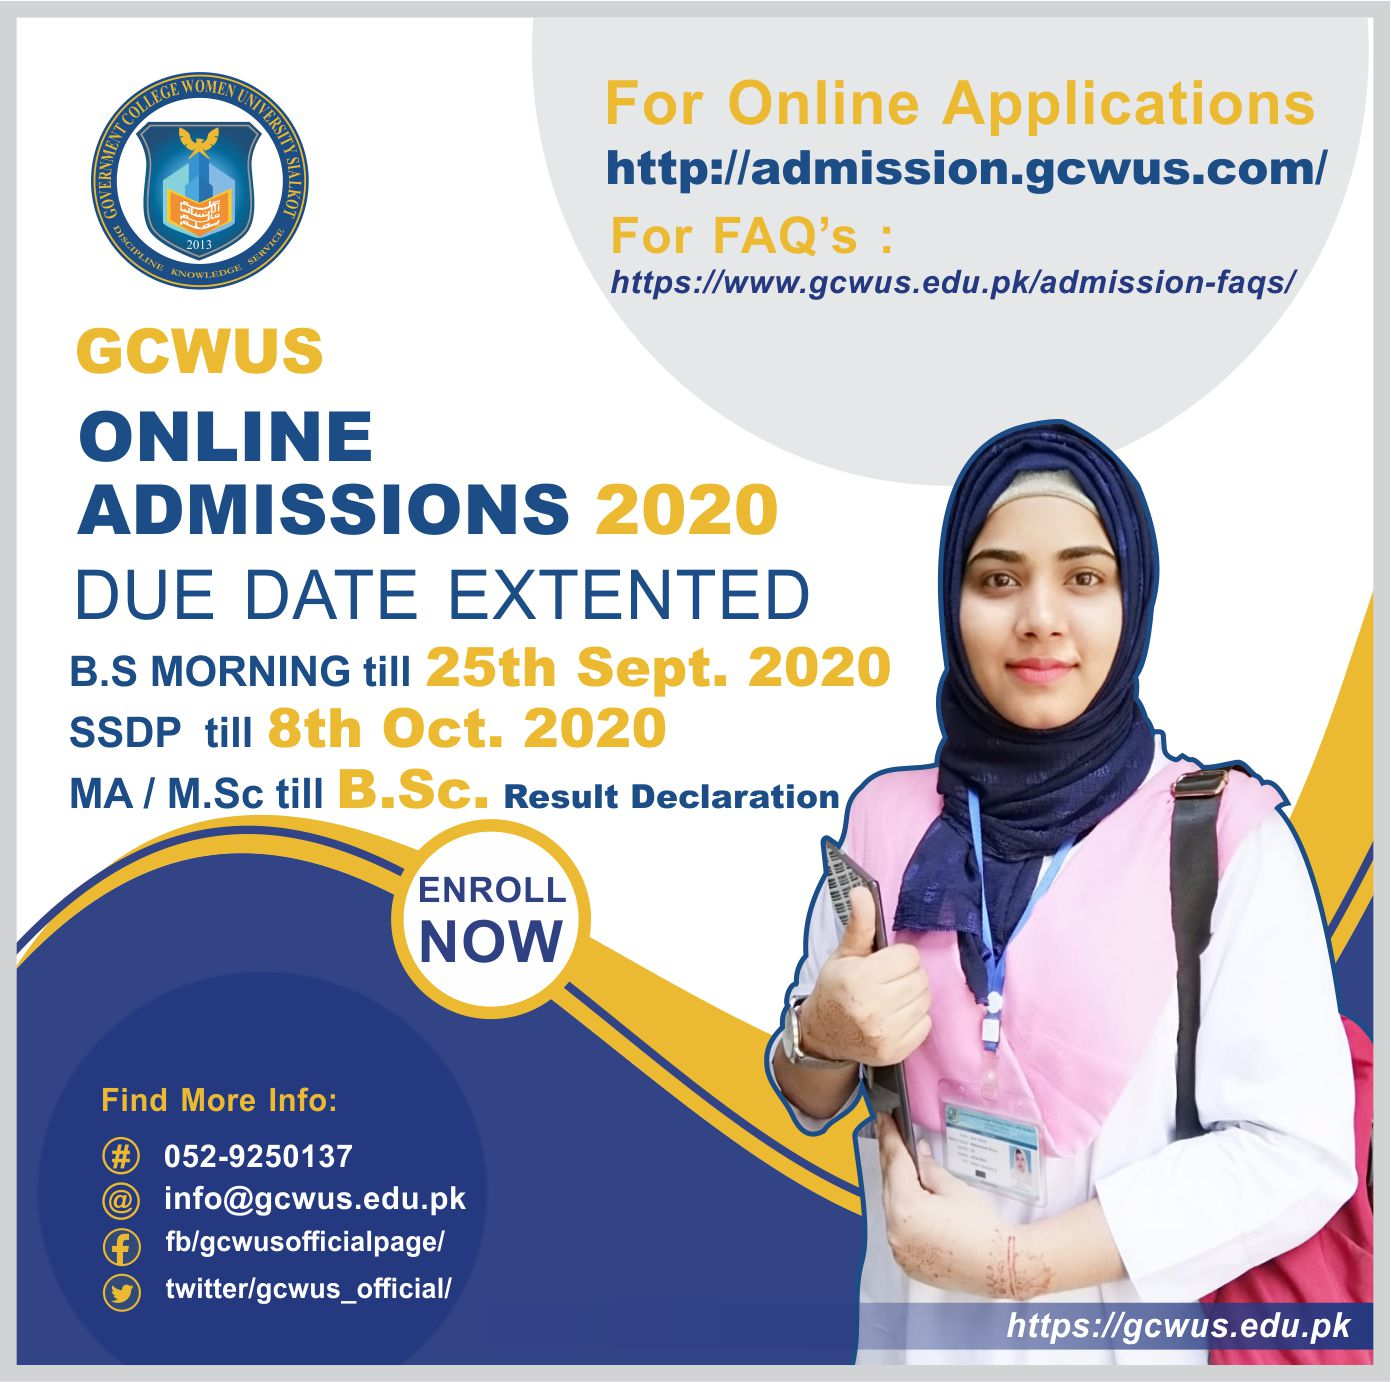 For Online Admissions-202